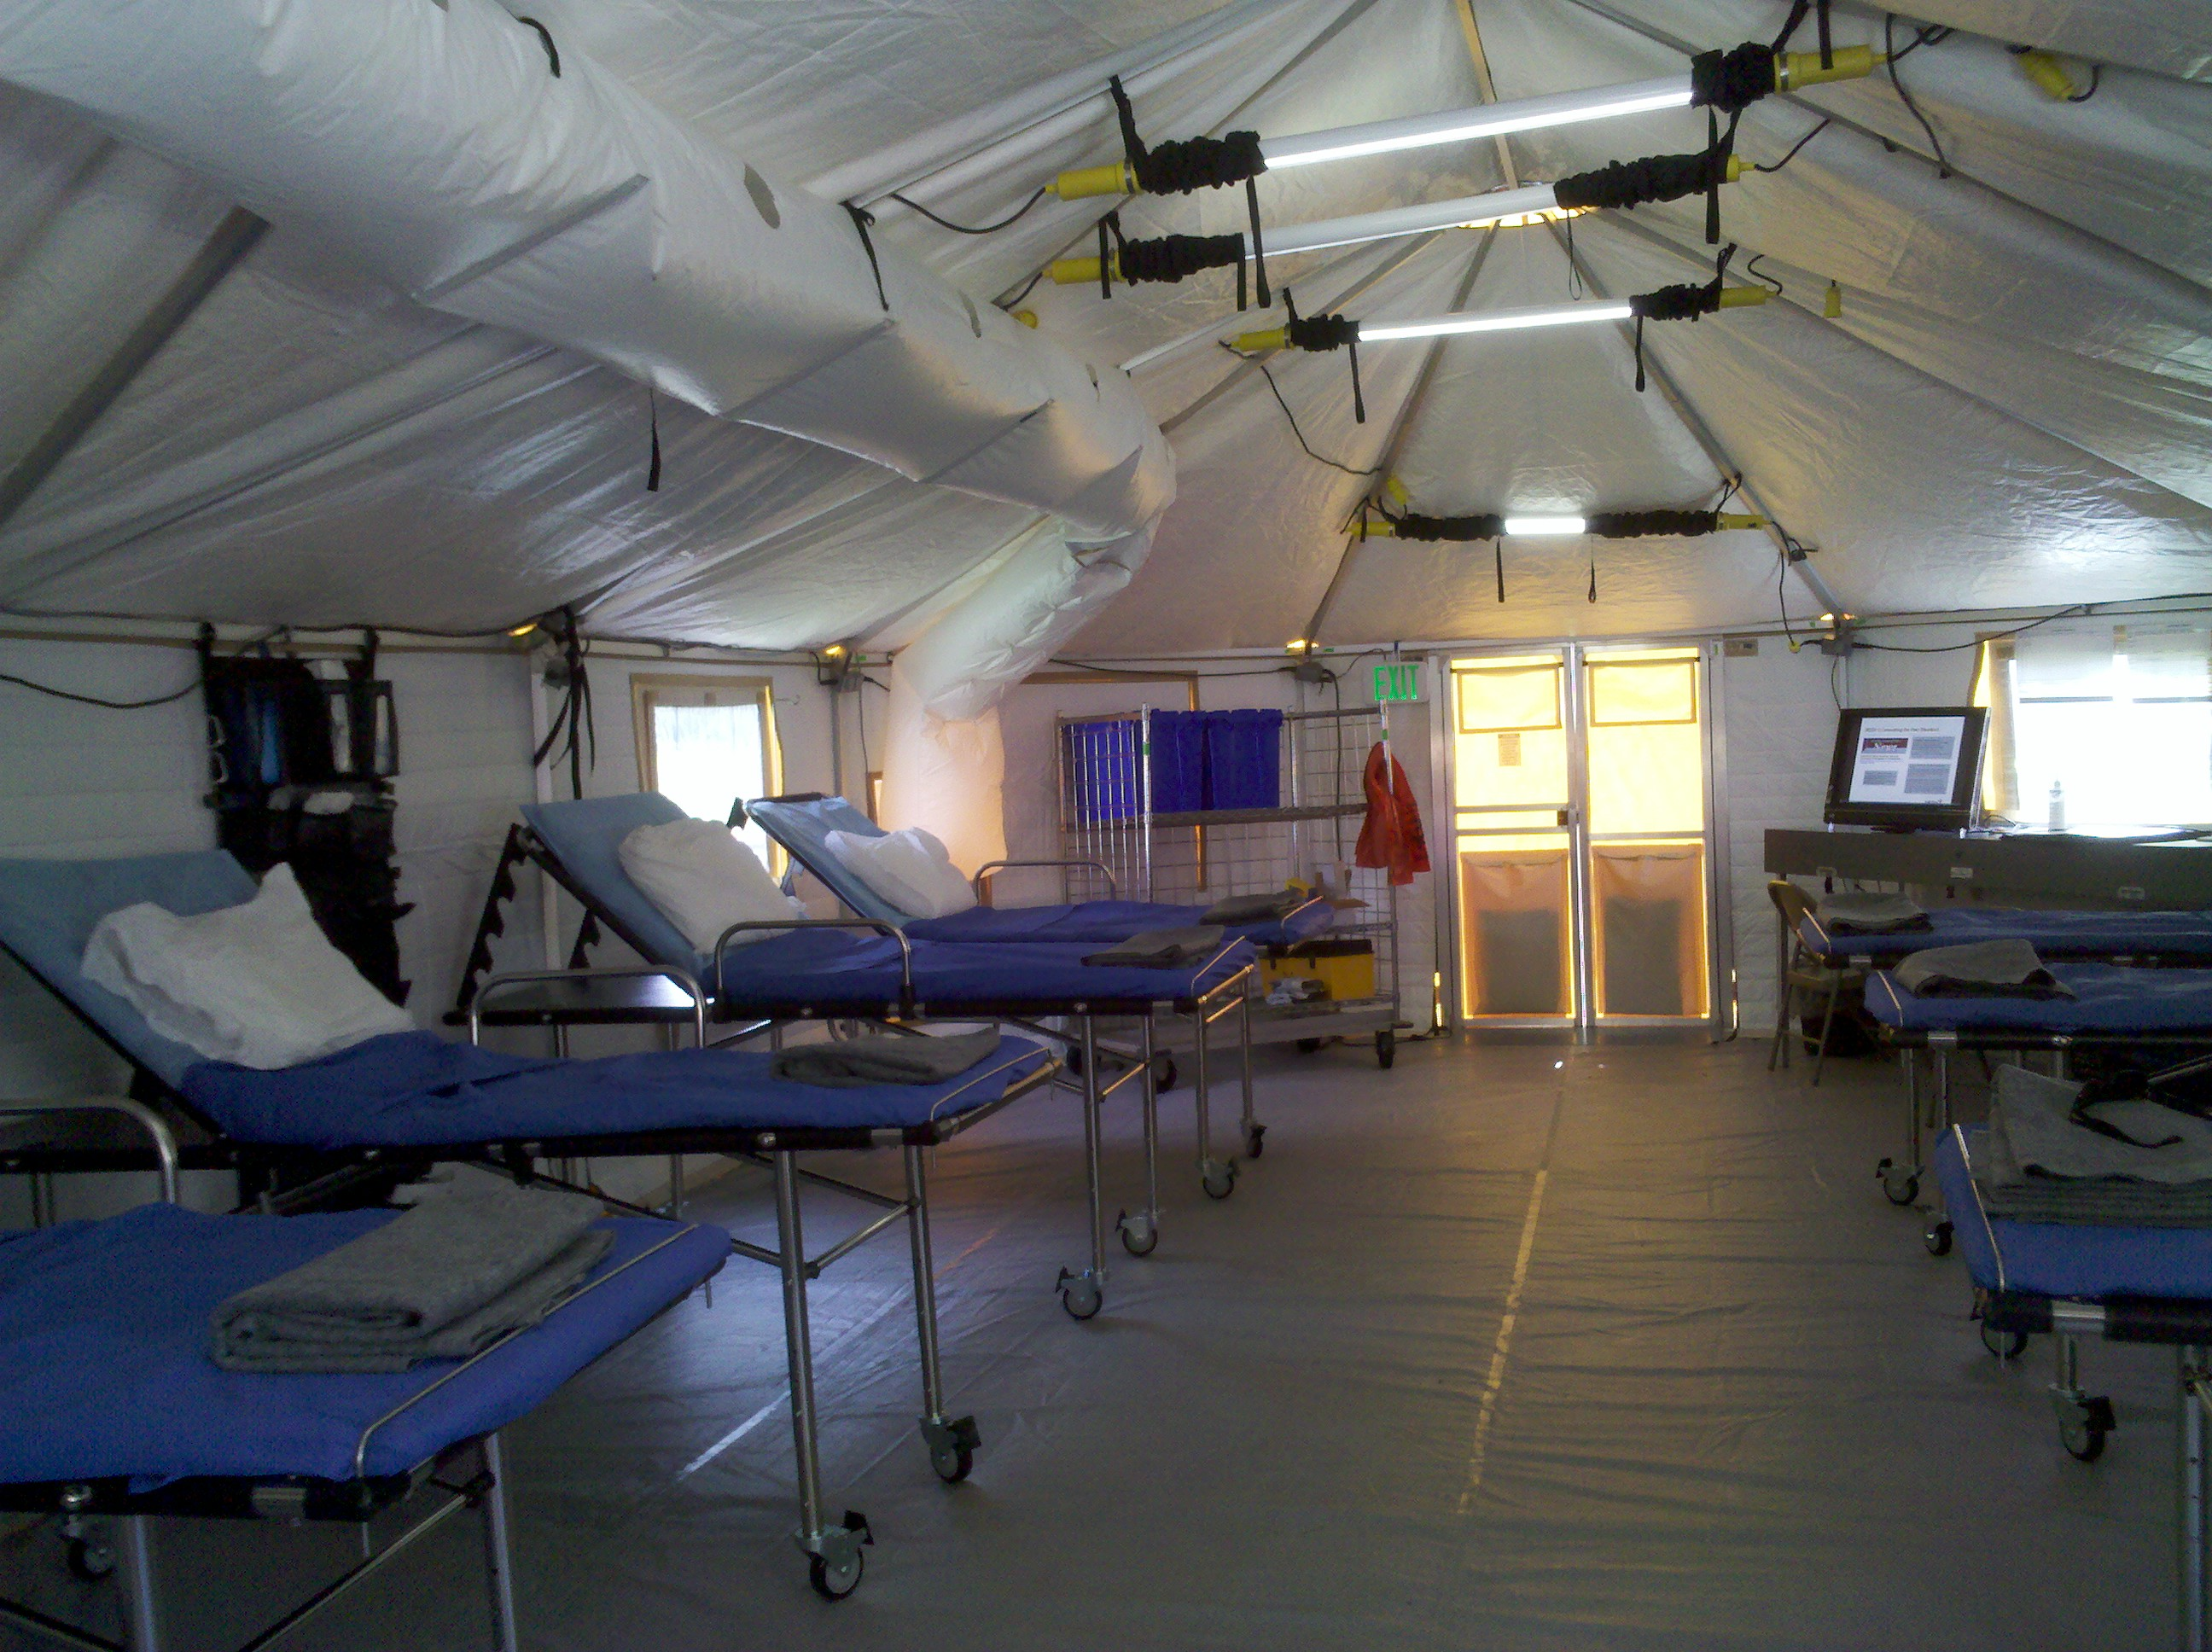 & Disaster Relief Tents: Do You Know Their Advantages?